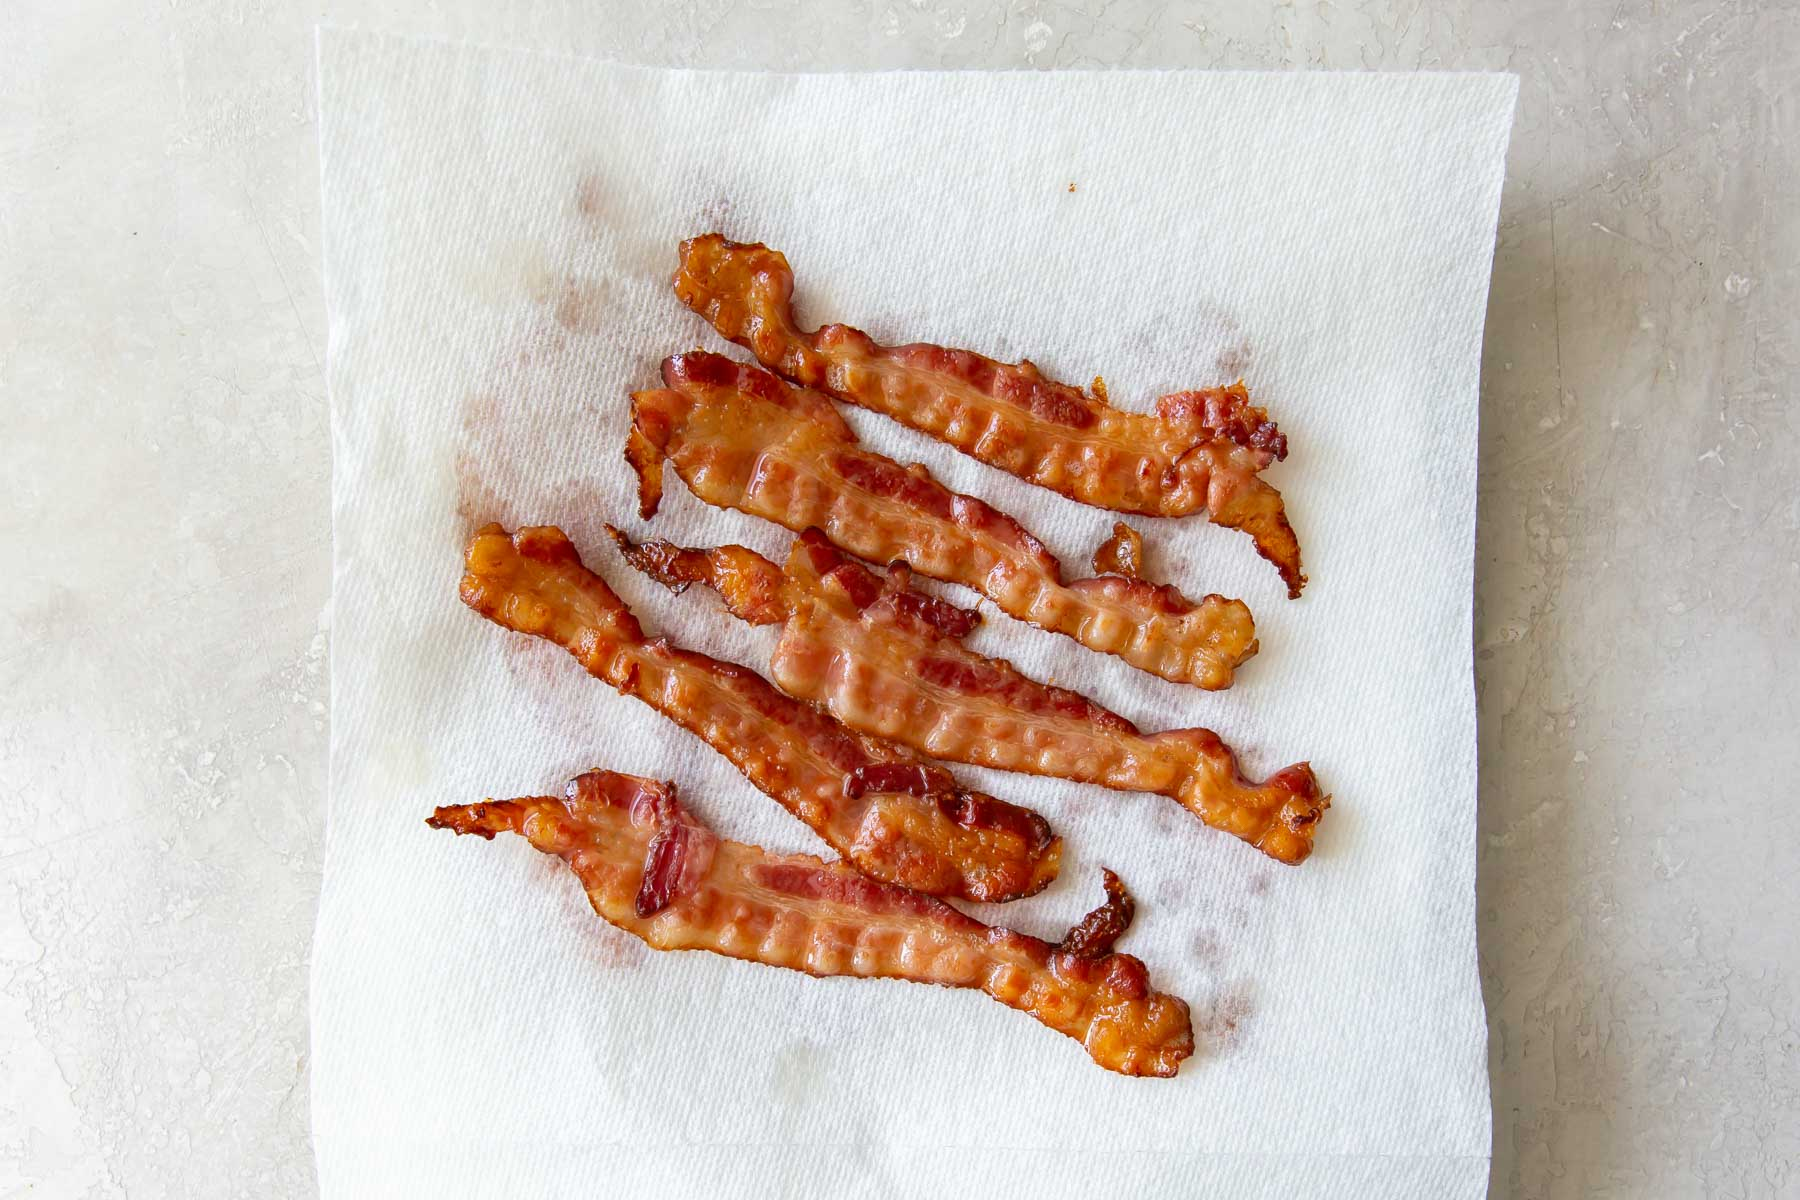 cooked bacon slices on paper towel lined plate